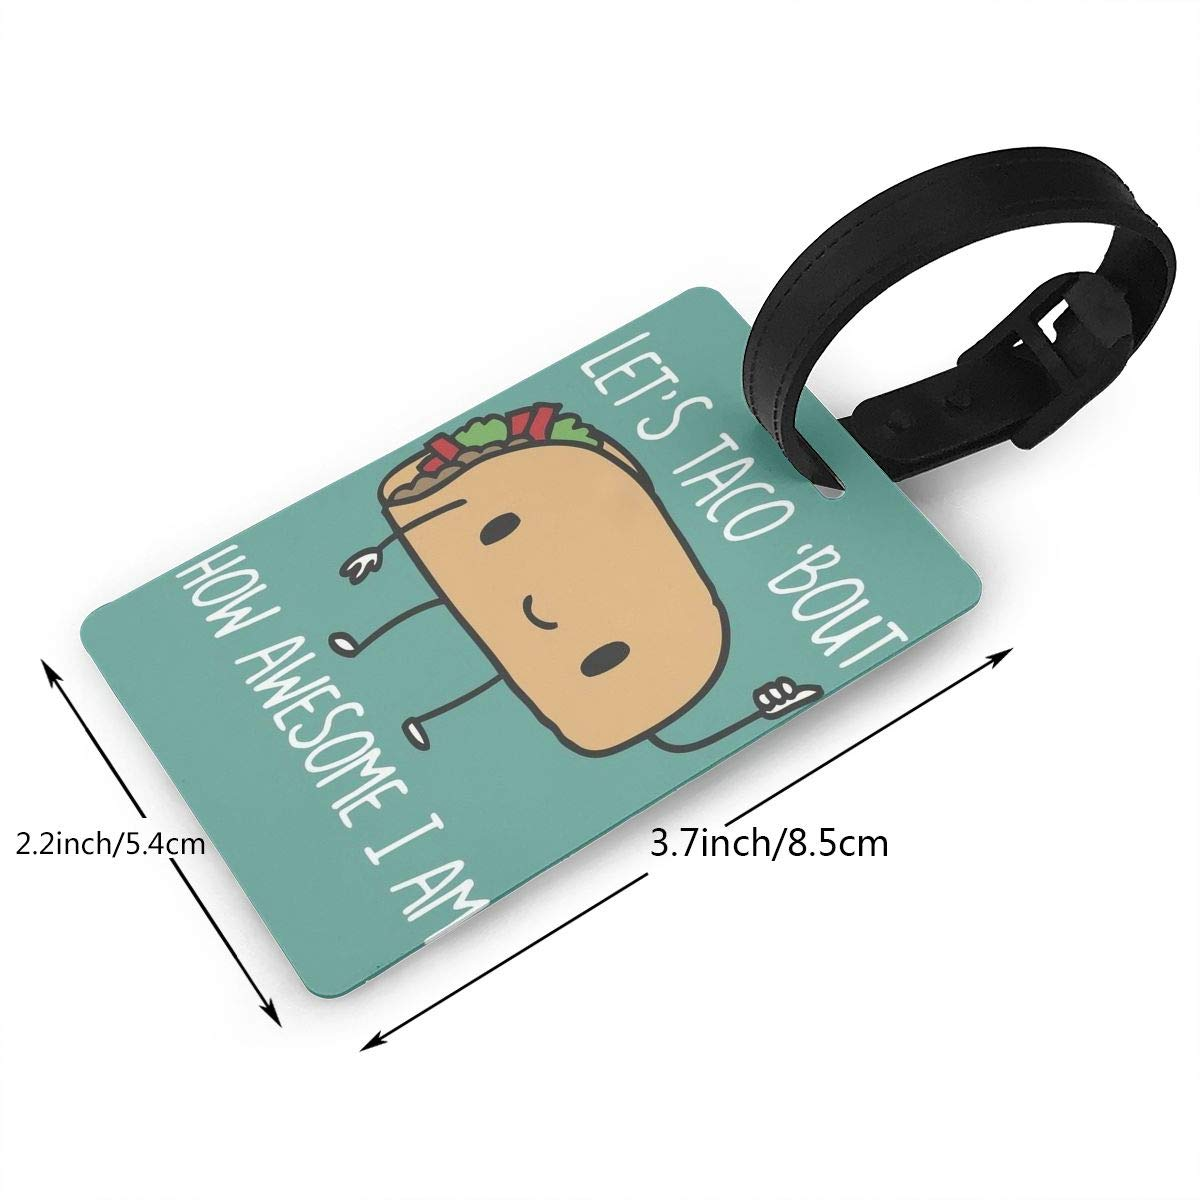 2 Pack Luggage Tags Taco Handbag Tag For Suitcase Bag Accessories